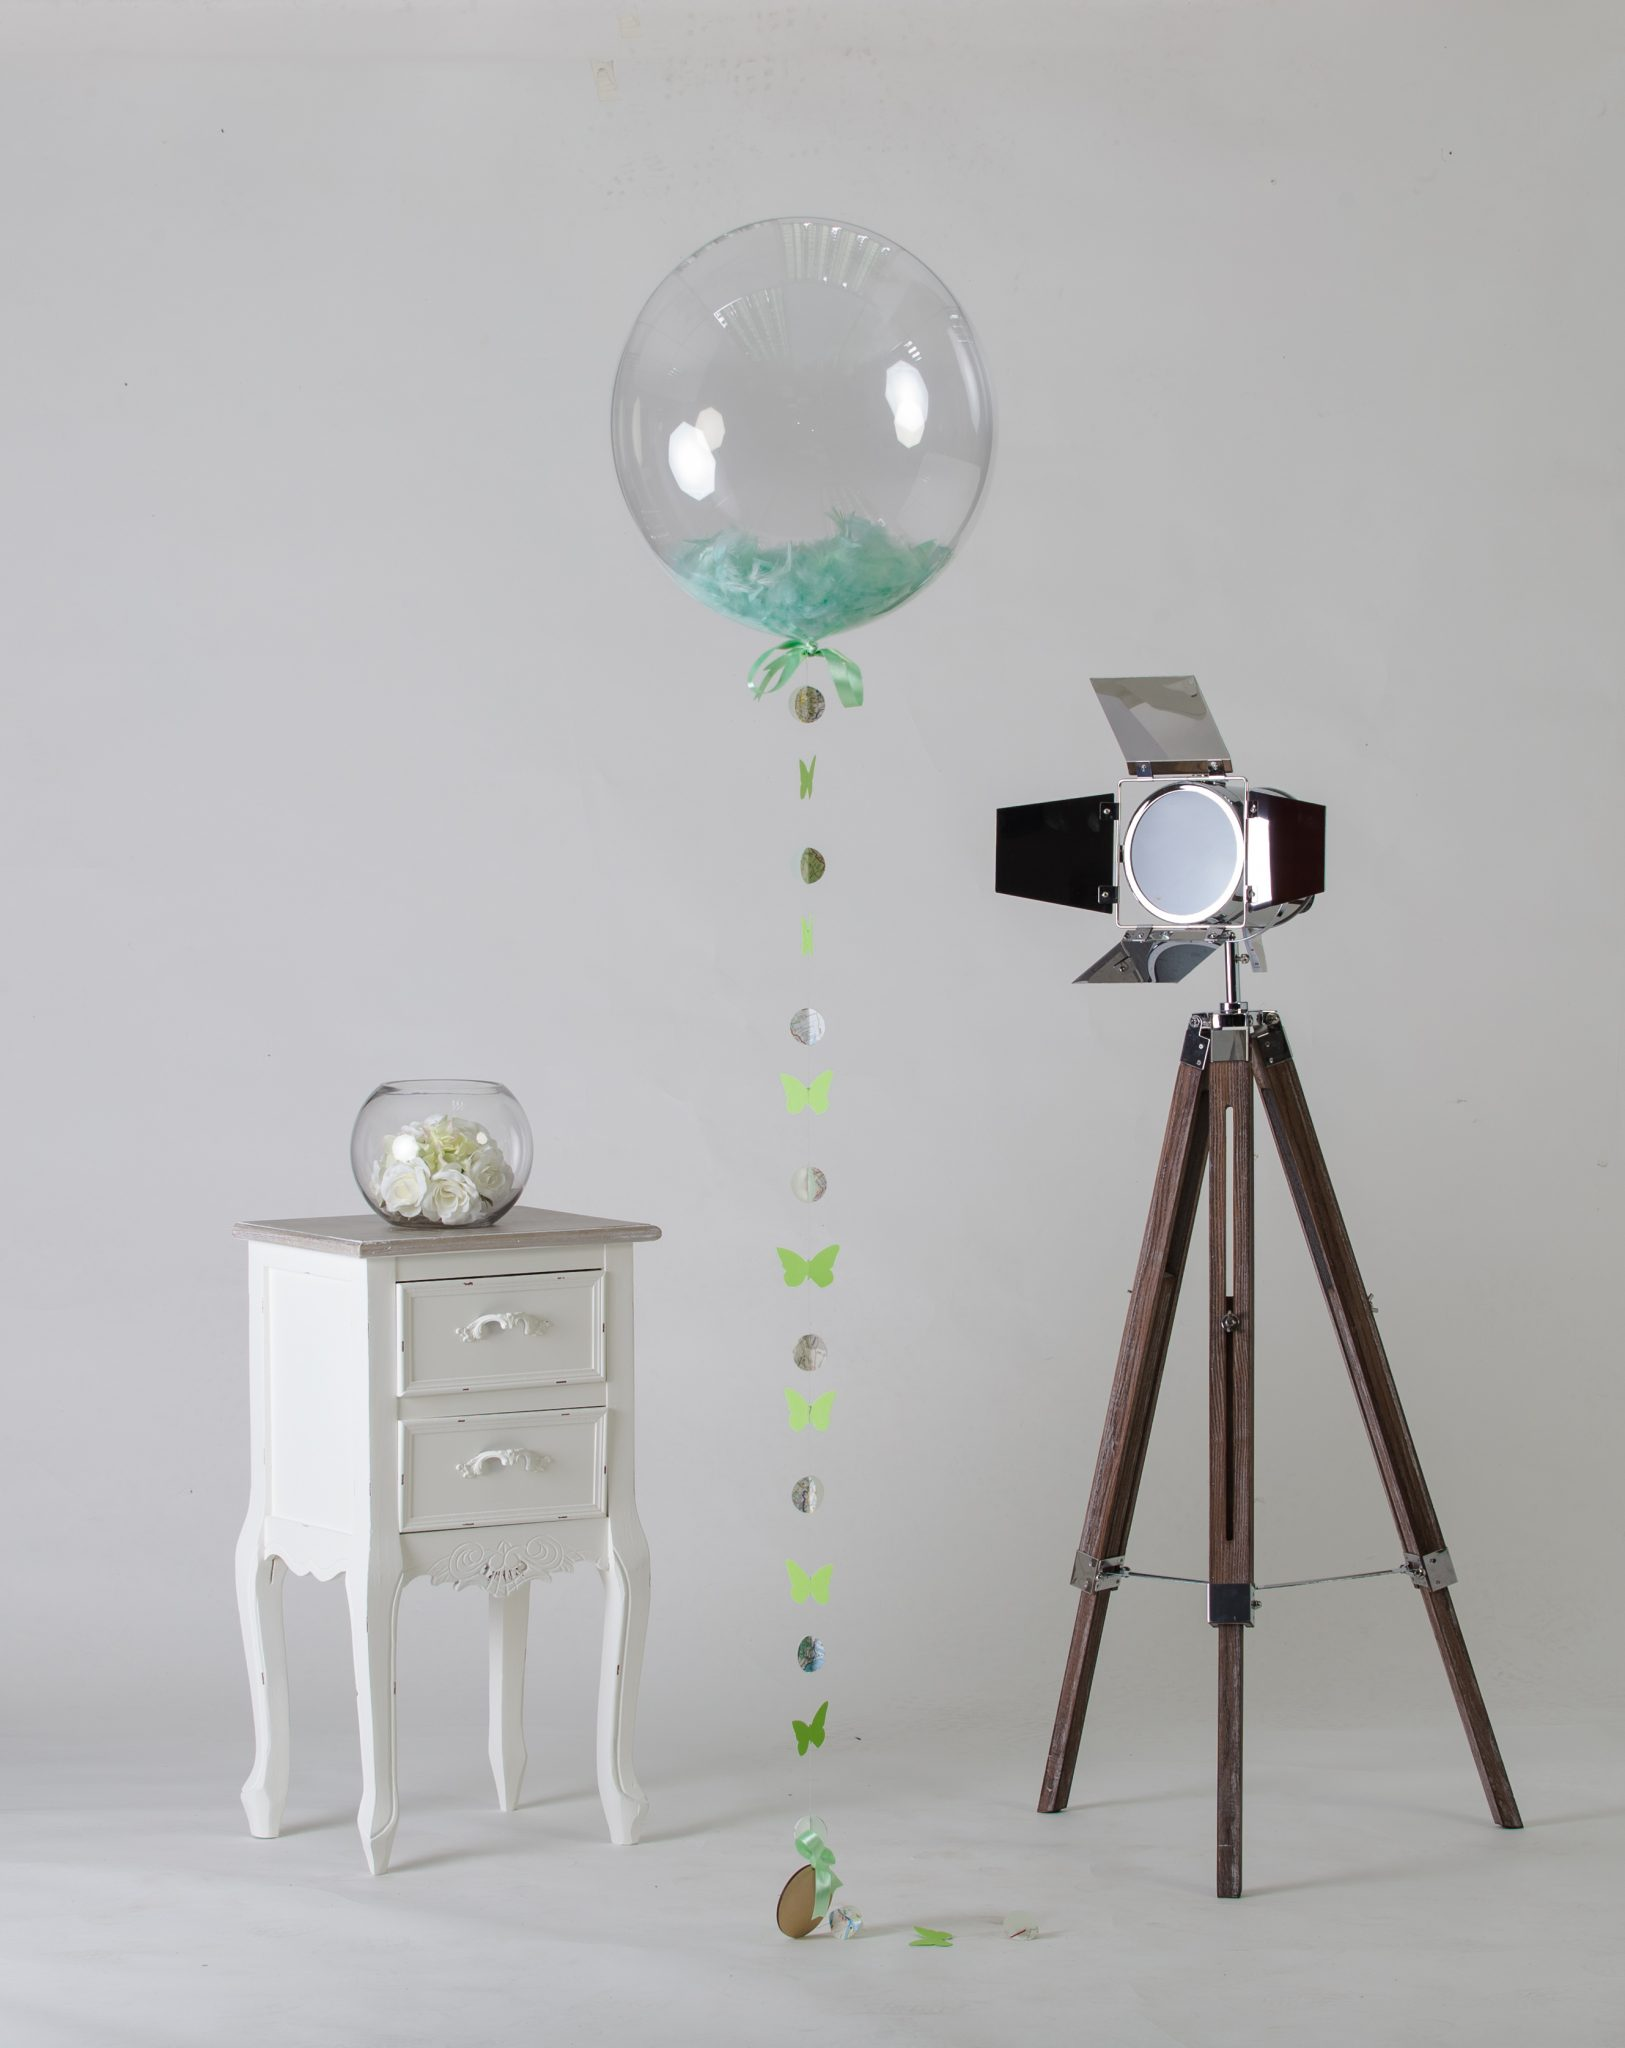 mont green filled clear balloon